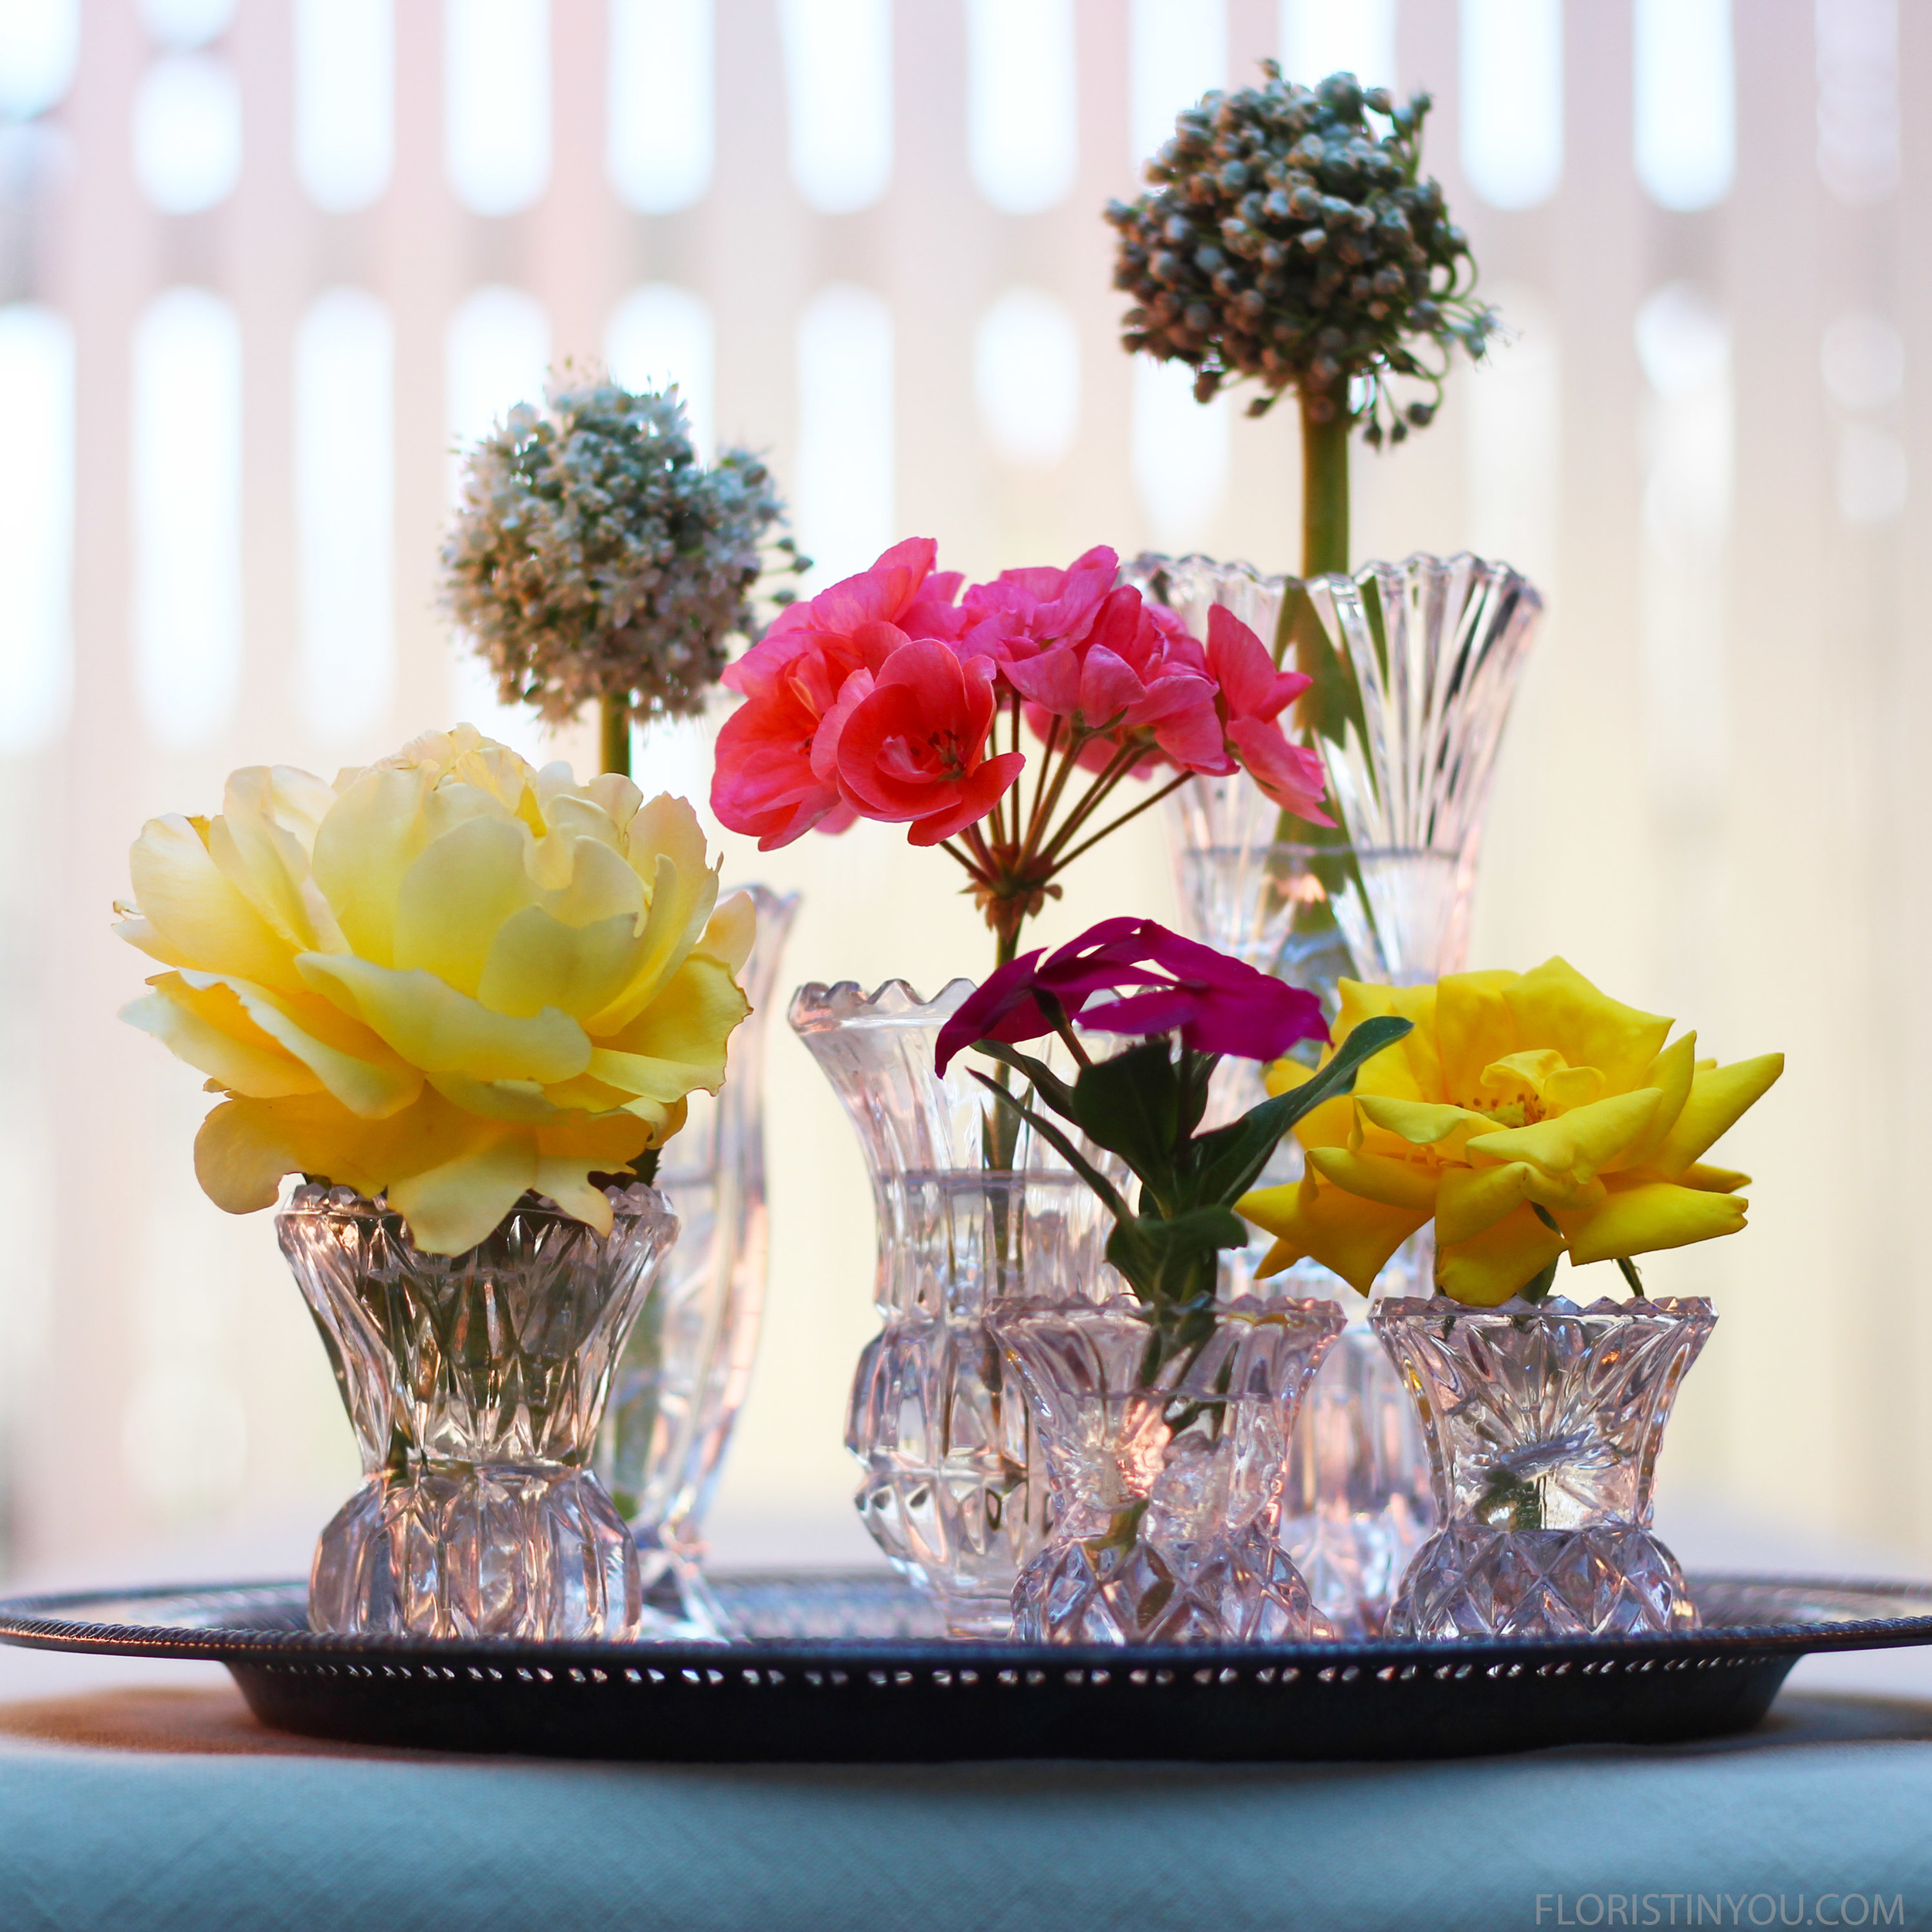 Have some variations in the height of the vases and blooms, as well as repetition of bloom types and colors. Put them on a silver tray and you are done. Have a fun dinner party.